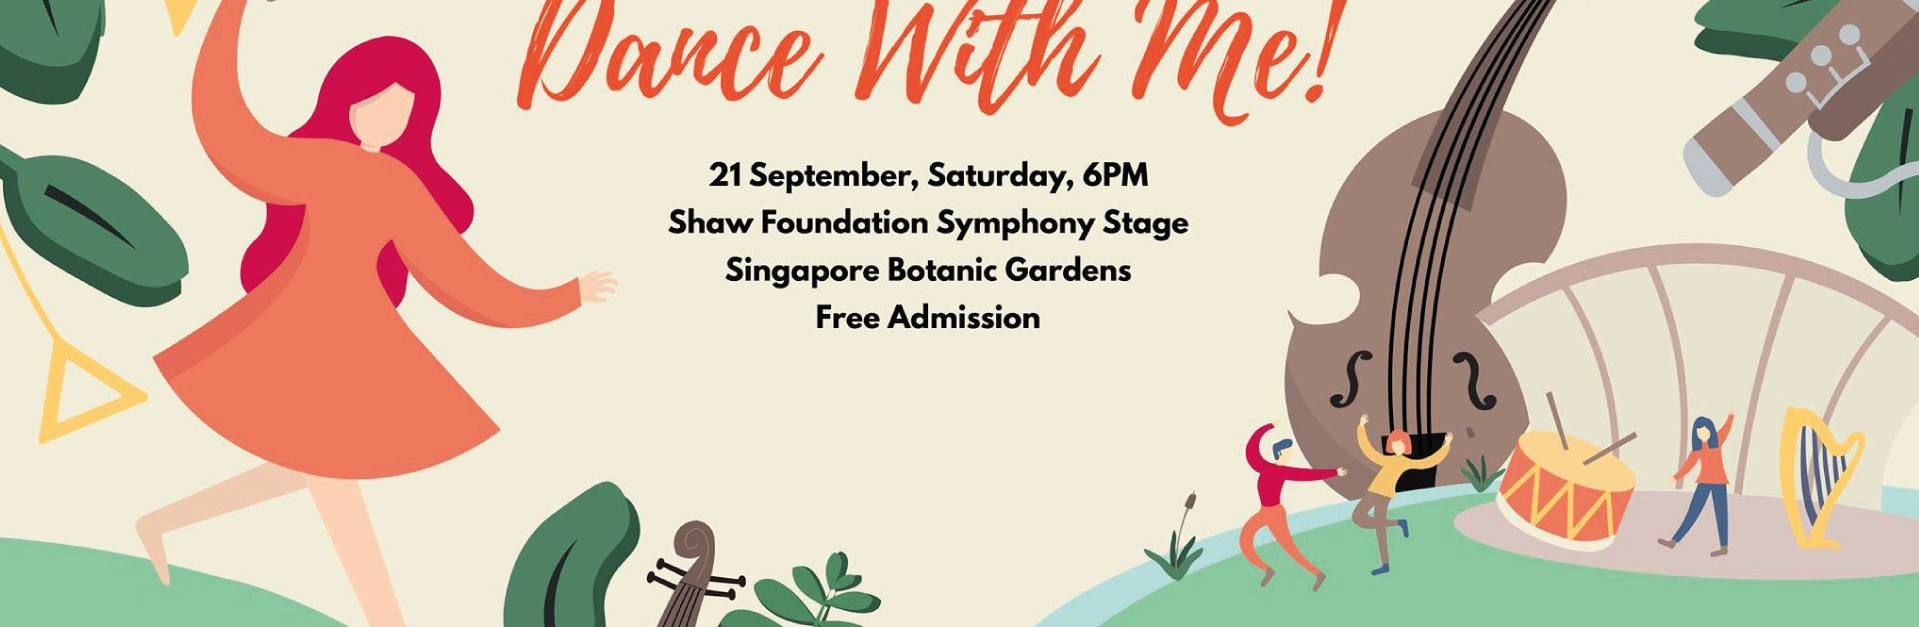 Symphony in the Park: Dance with Me!